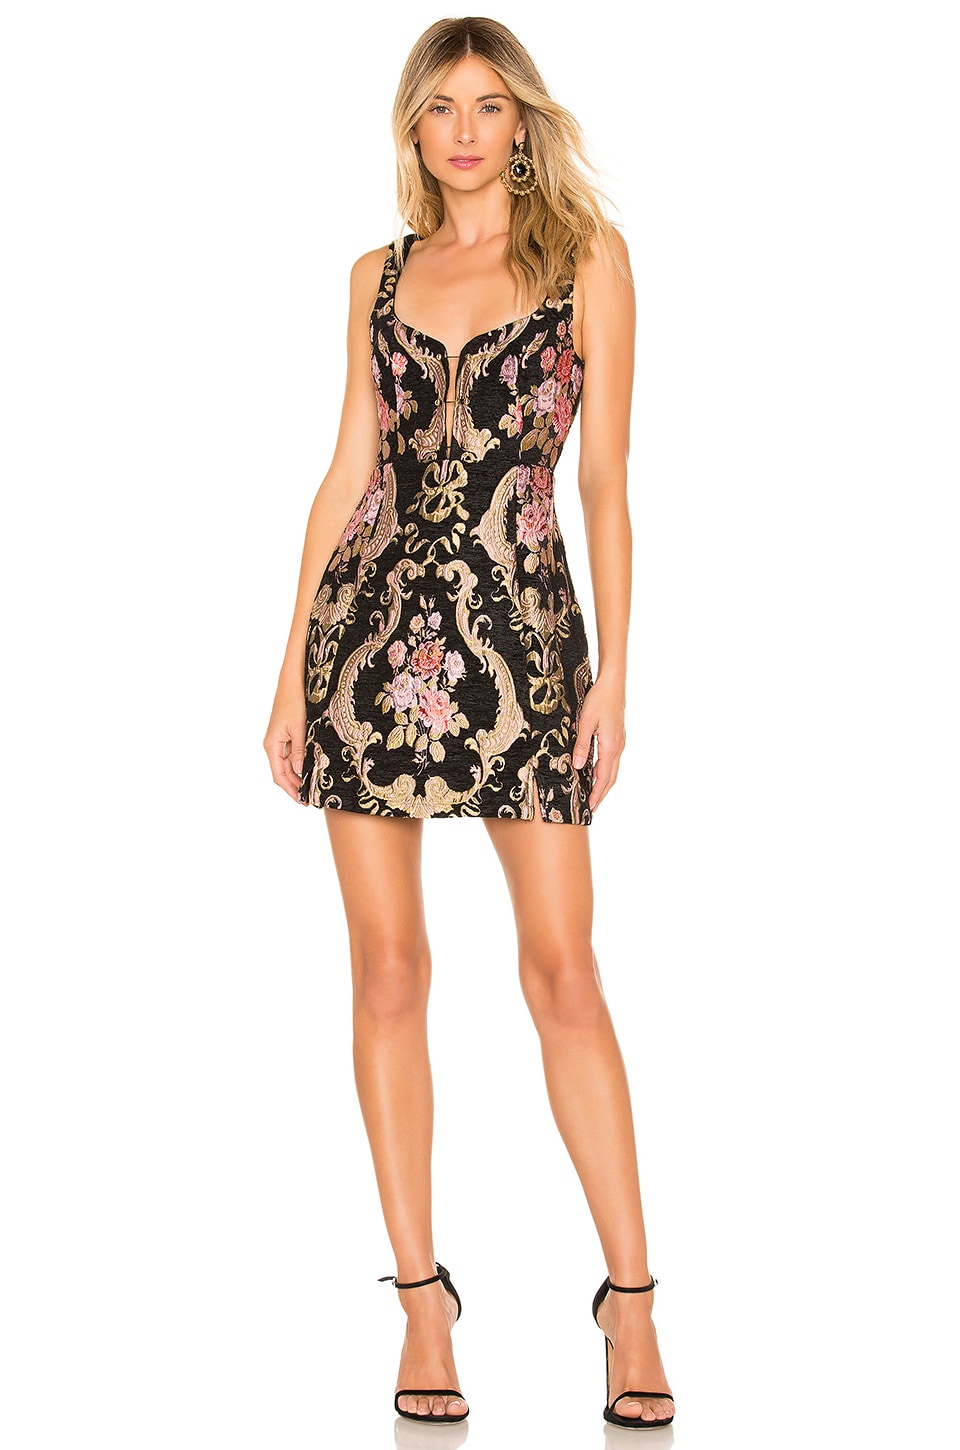 For Love & Lemons FOR LOVE & LEMONS BROCADE TAPESTRY MINI DRESS IN BLACK.